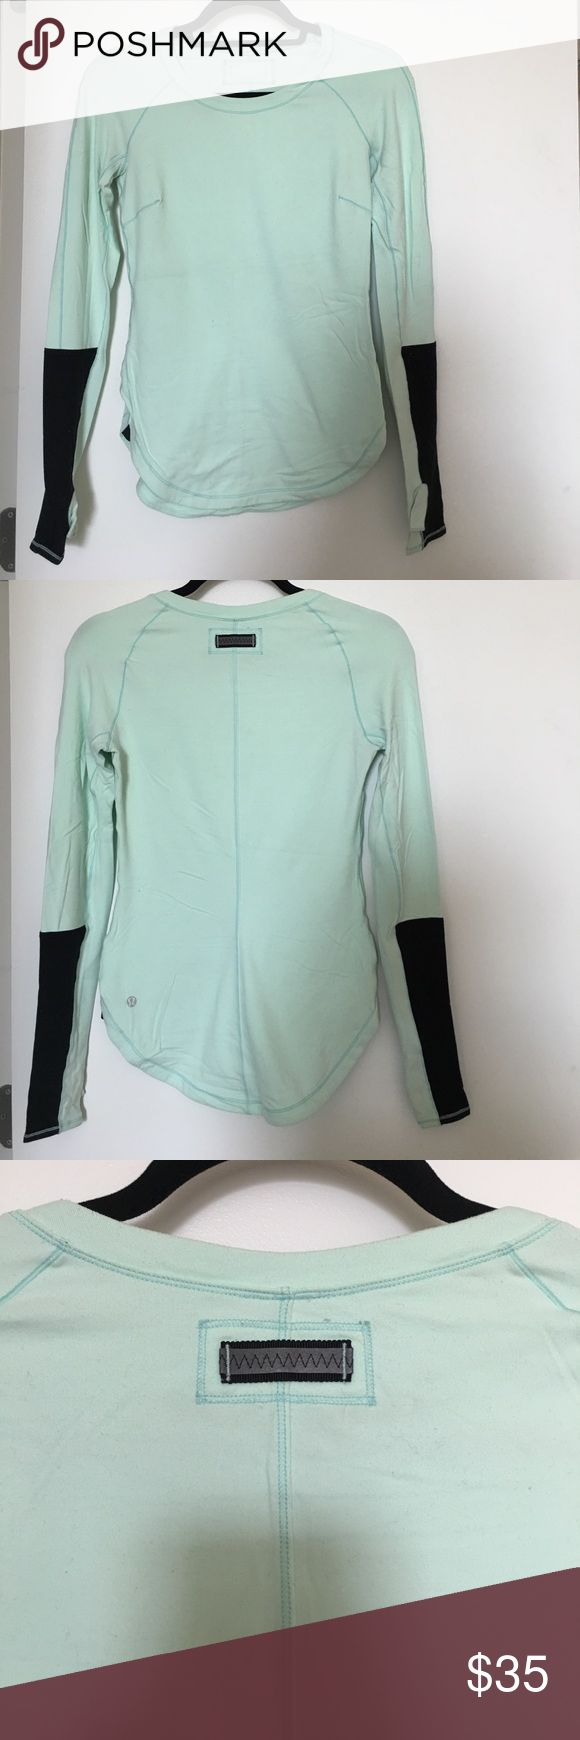 Lululemon Green Long Sleeve Top with Black Detail Lululemon Green Long Sleeve Top with Black Detail on Sleeves, end of side seams, and reflective strip on back. Softest fabric. Worn twice. lululemon athletica Tops Tees - Long Sleeve